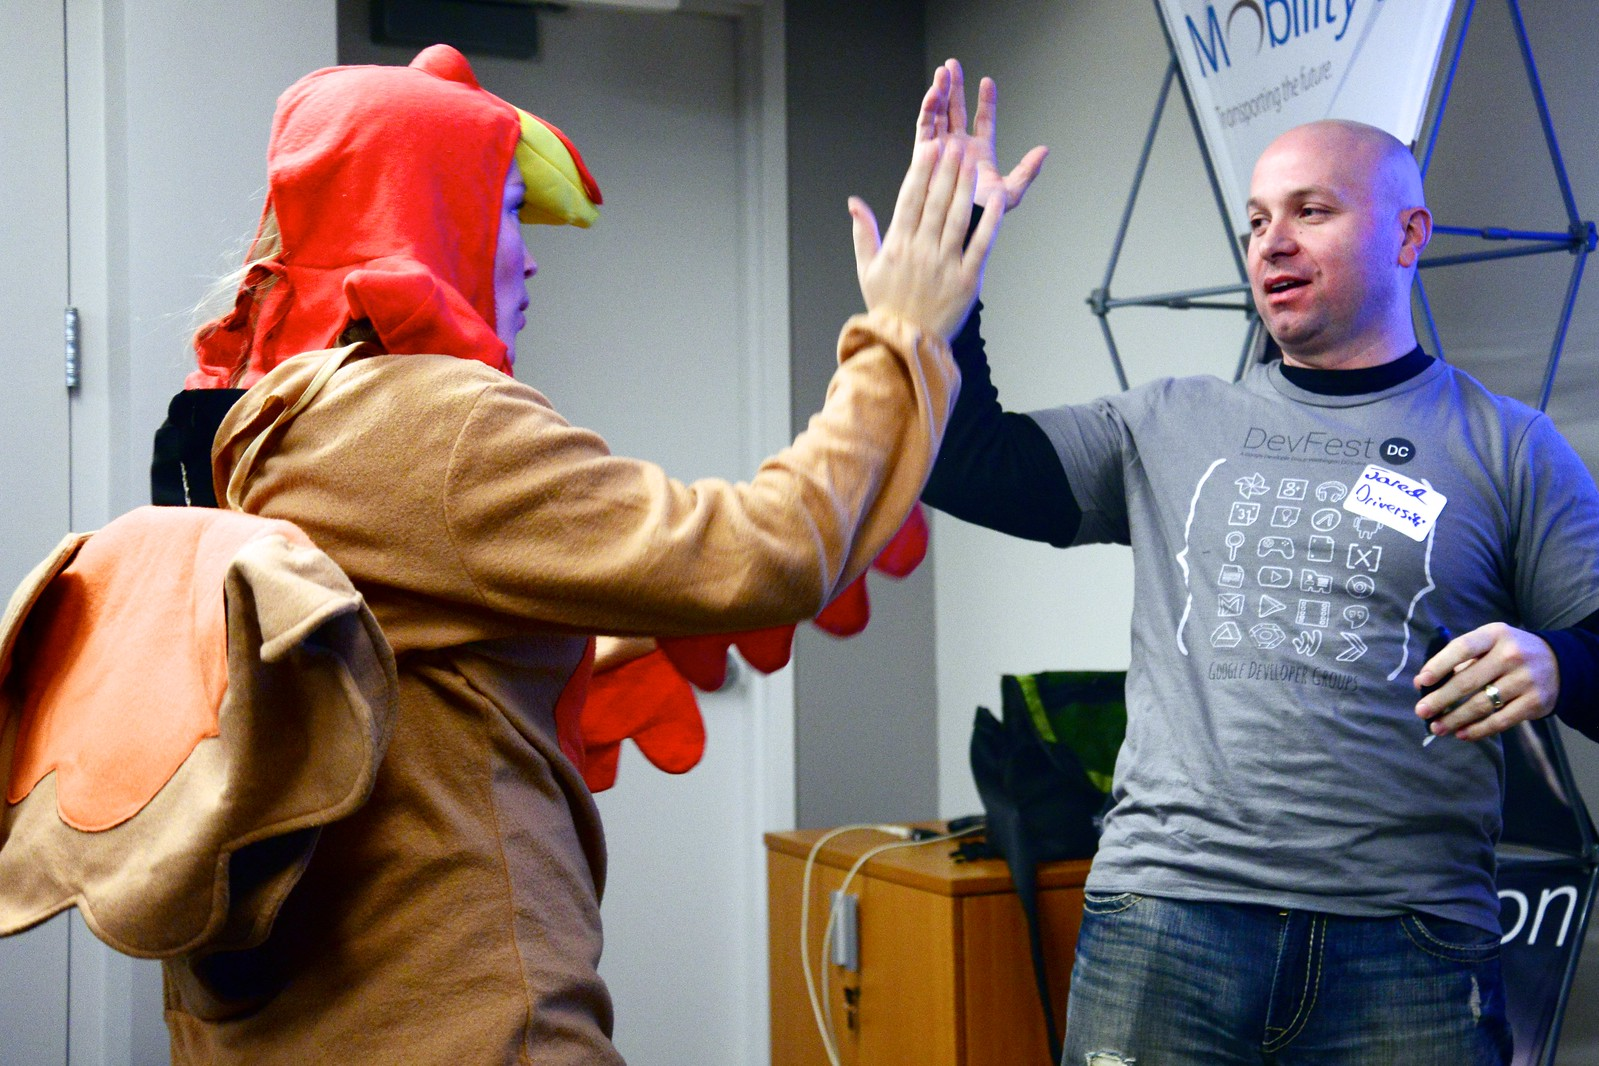 Photo Friday: Hug Timer continuing its world embrace, this time with turkey